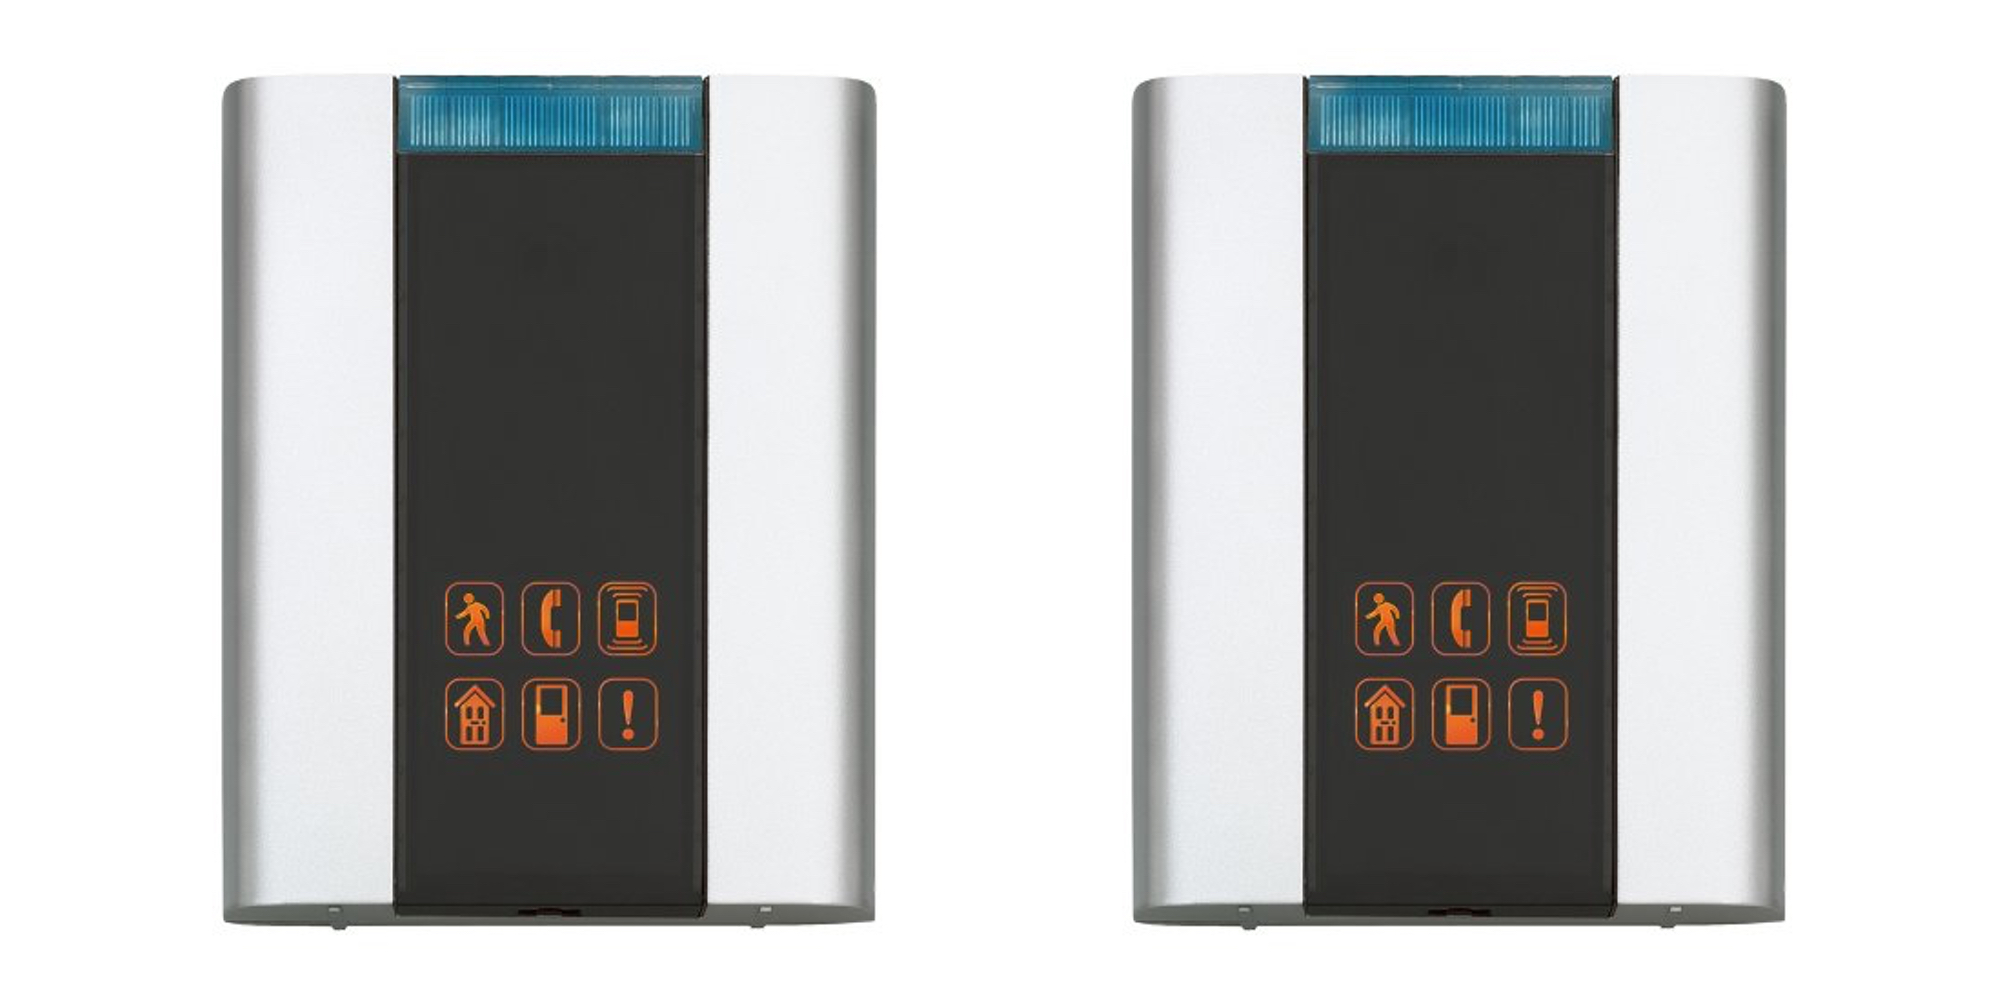 Honeywells Wireless Doorbell Is An Amazon Favorite Now At All Time Wiring A Honeywell Low 1650 9to5toys